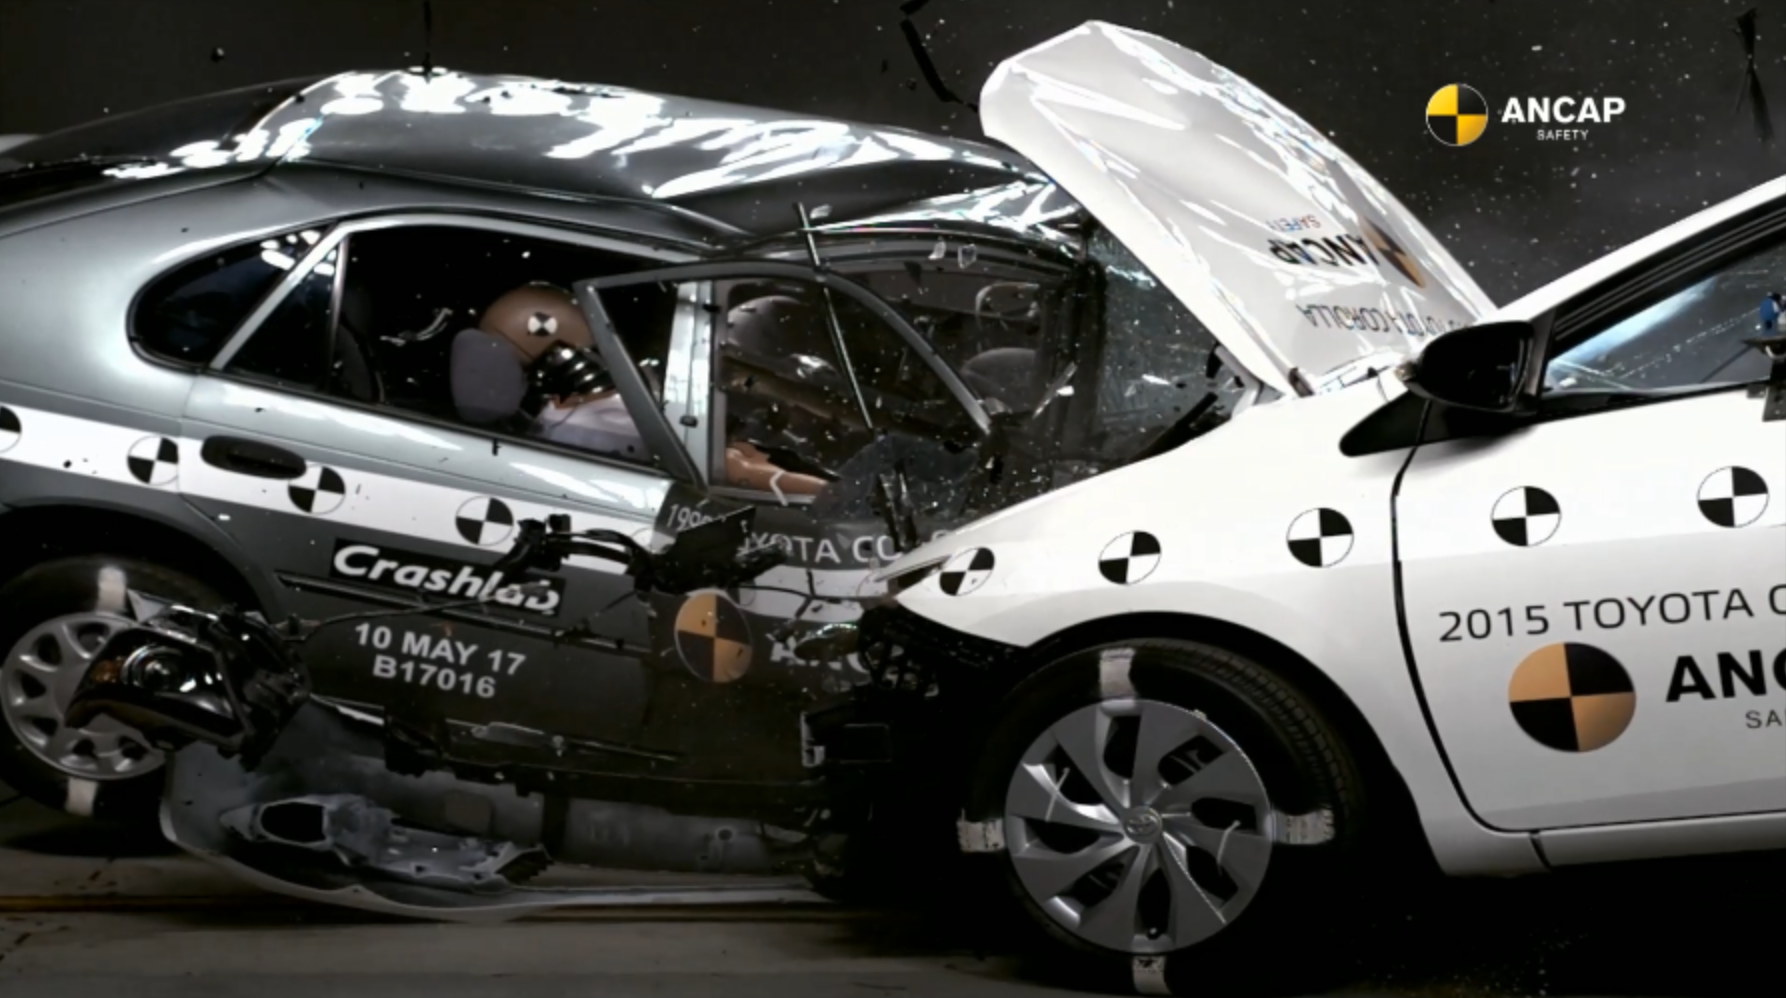 ANCAP Car-to-Car Crash Test involving 1998 and 2015 Toyota Corollas.